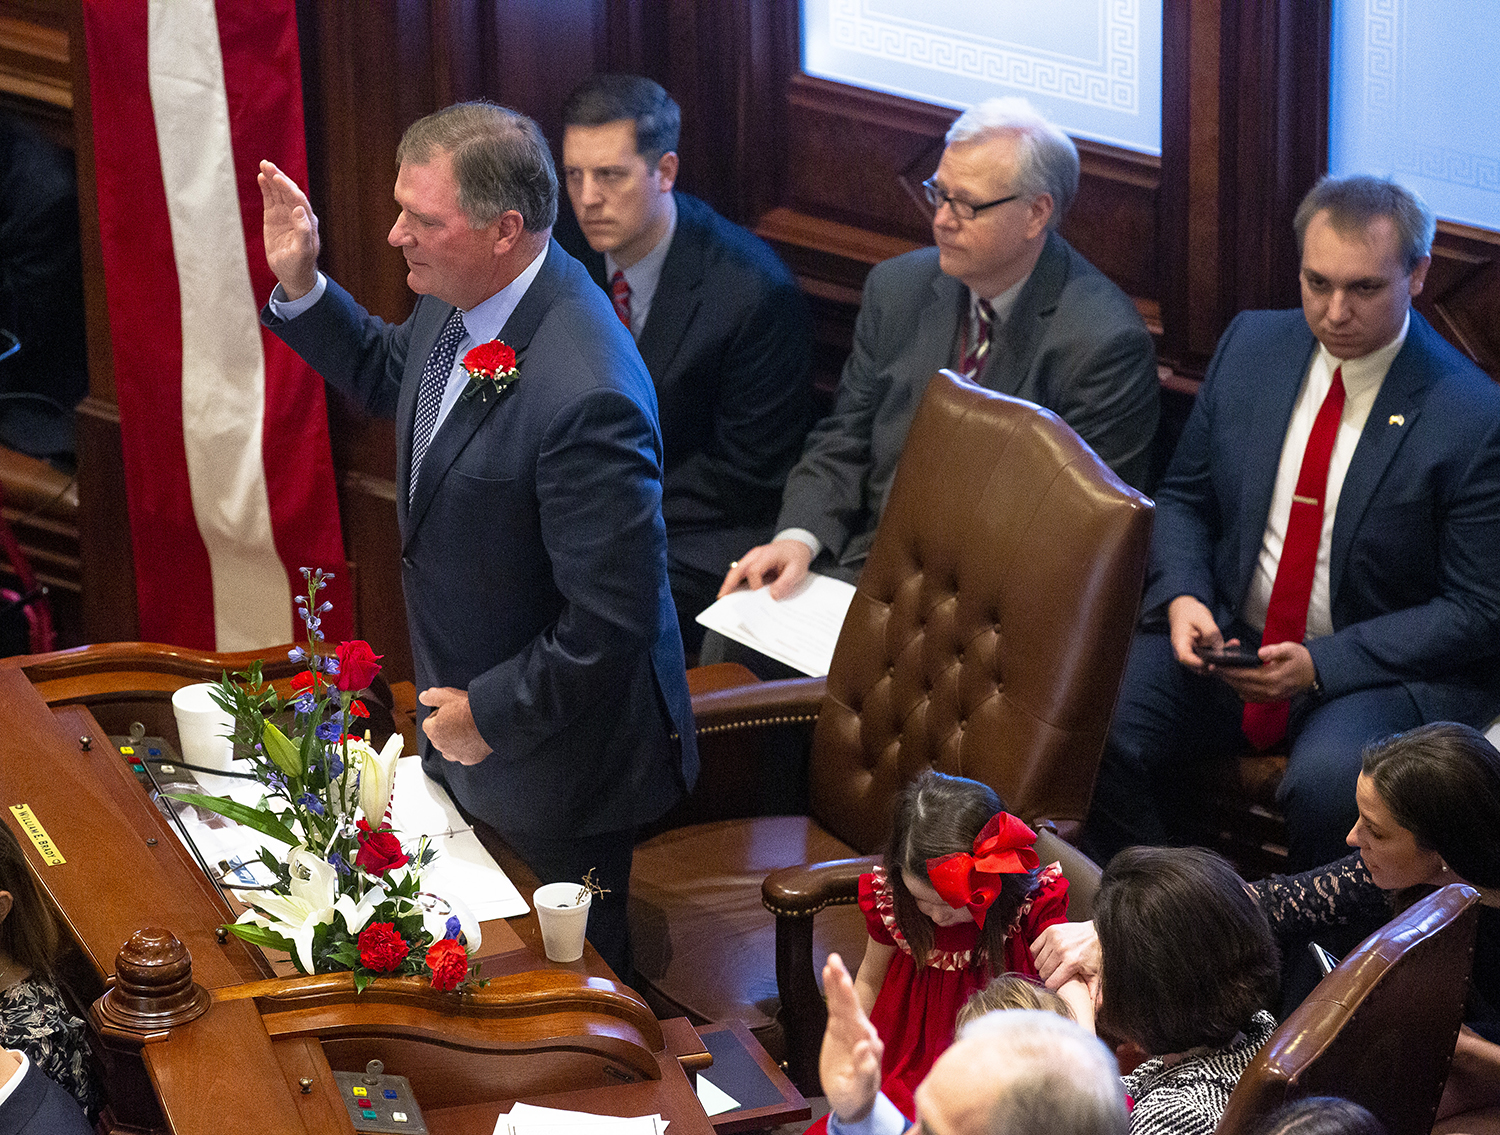 Sen. Bill Brady, R-Bloomington, is sworn in during the inauguration of the Illinois State Senate of the 101st General Assembly Wednesday, Jan. 9, 2019 at the Capitol in Springfield, Ill. [Rich Saal/The State Journal-Register]